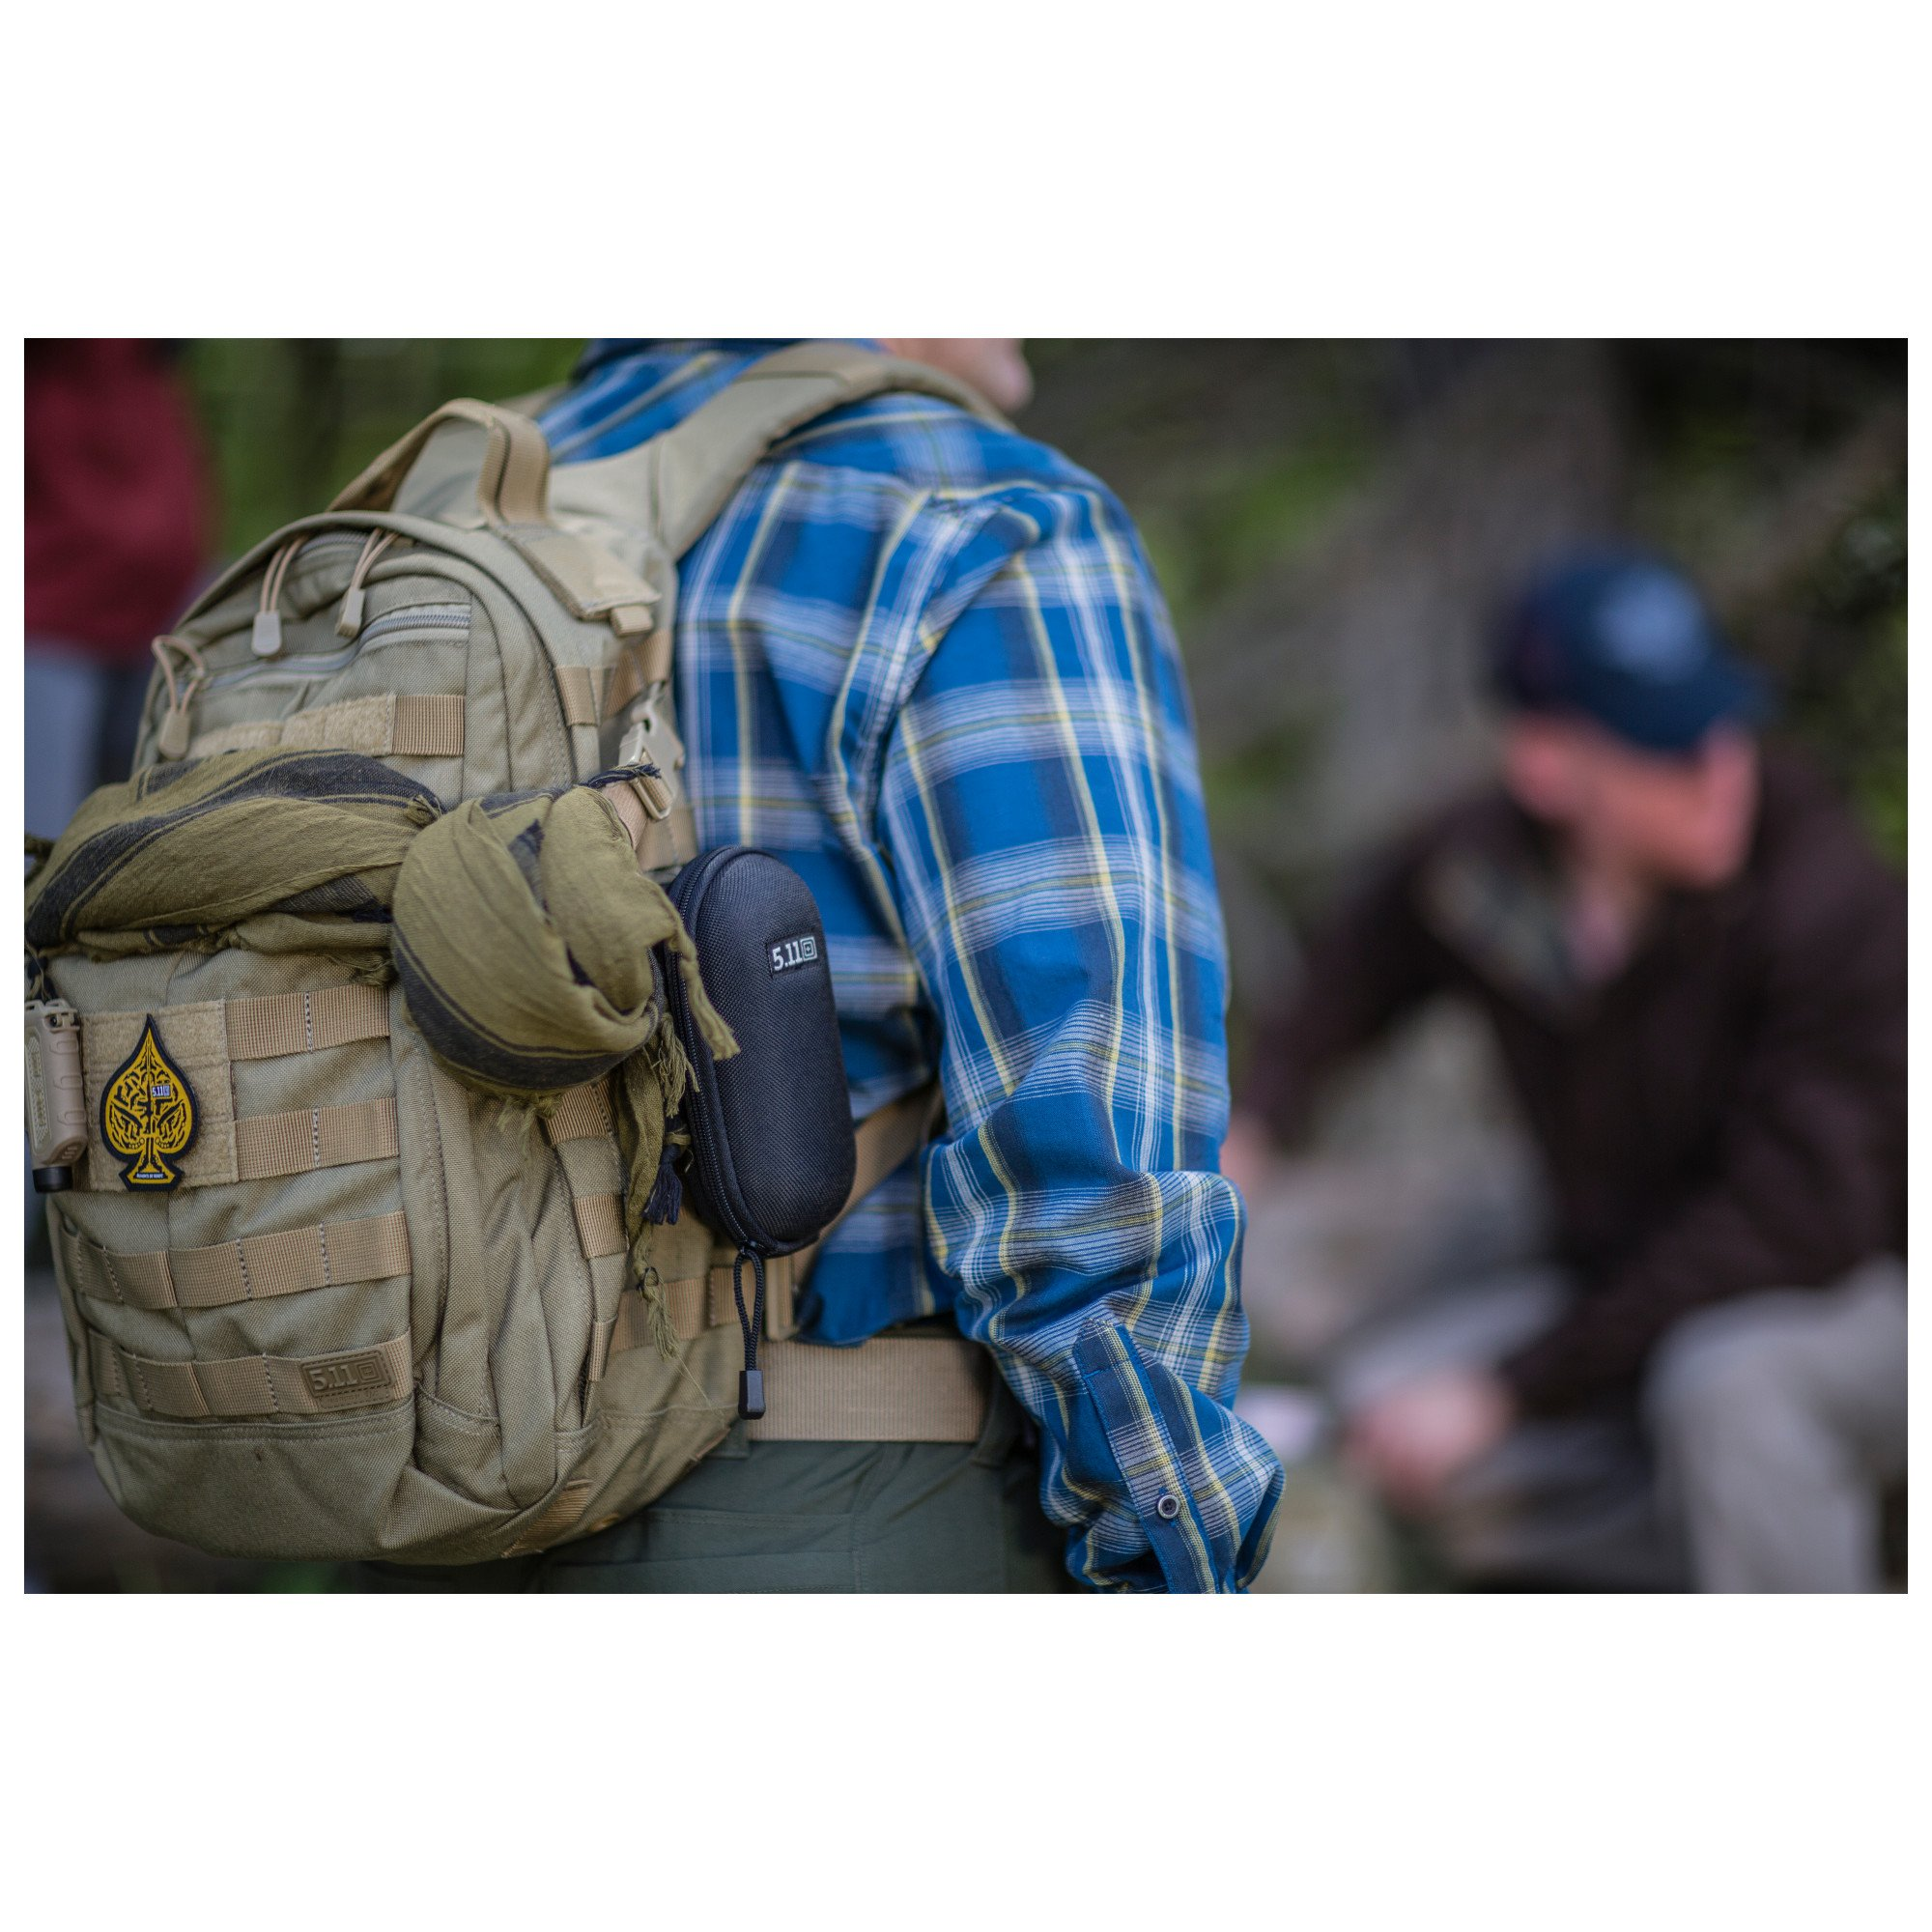 5.11 RUSH12 Tactical Military Assault Molle Backpack, Bug Out Rucksack Bag, Small, Style 56892, Multicam by 5.11 (Image #5)